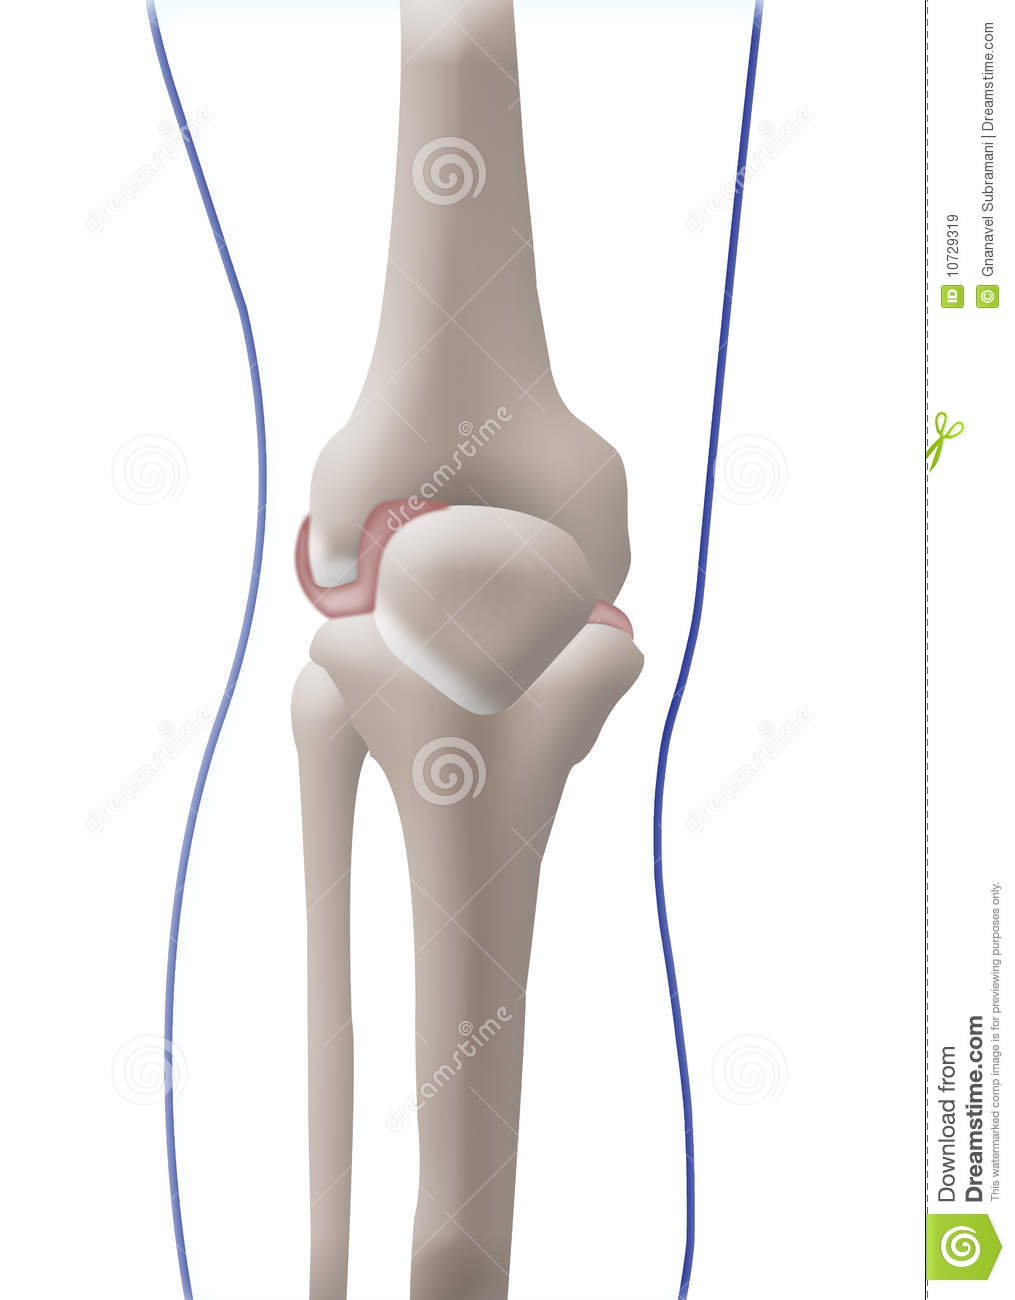 bone knee royalty free stock images image 10729319 bones clipart free bones clipart with black background